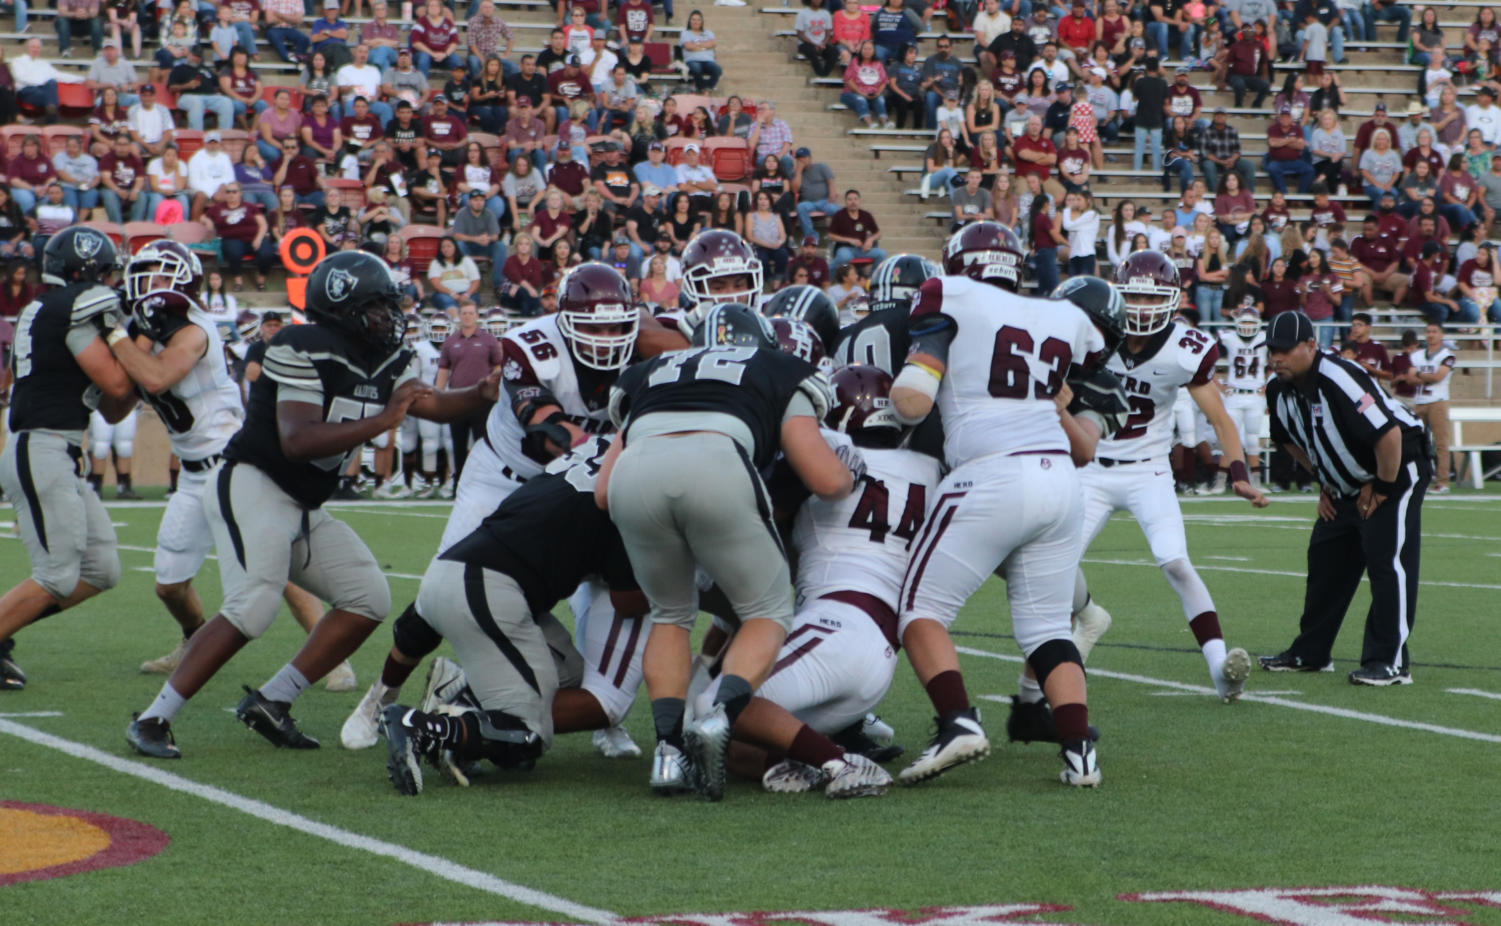 The Raiders compete during their Sept. 13 game against Hereford.